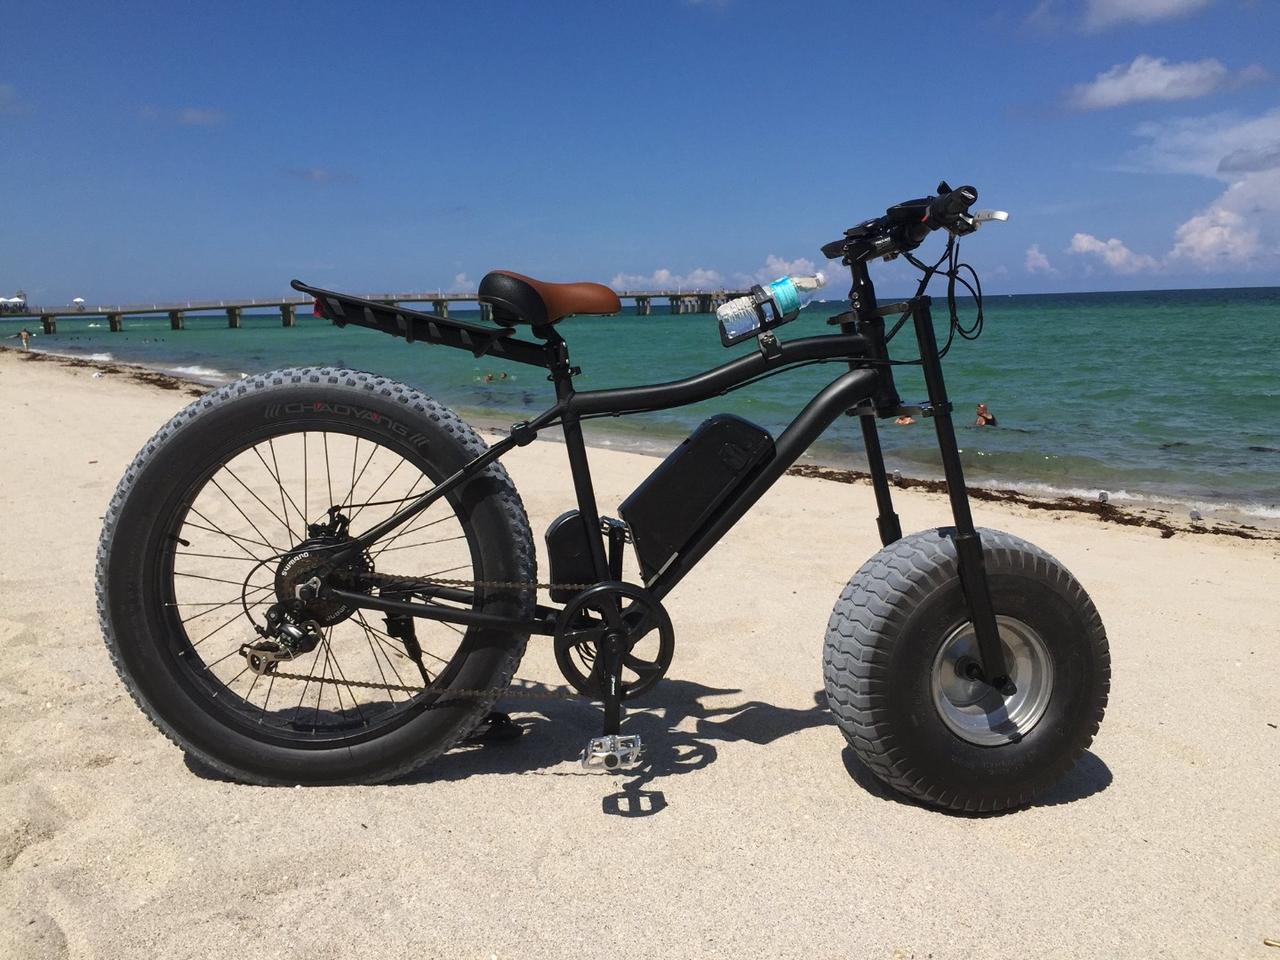 The weight of the Xterrain500 production model has yet to be established